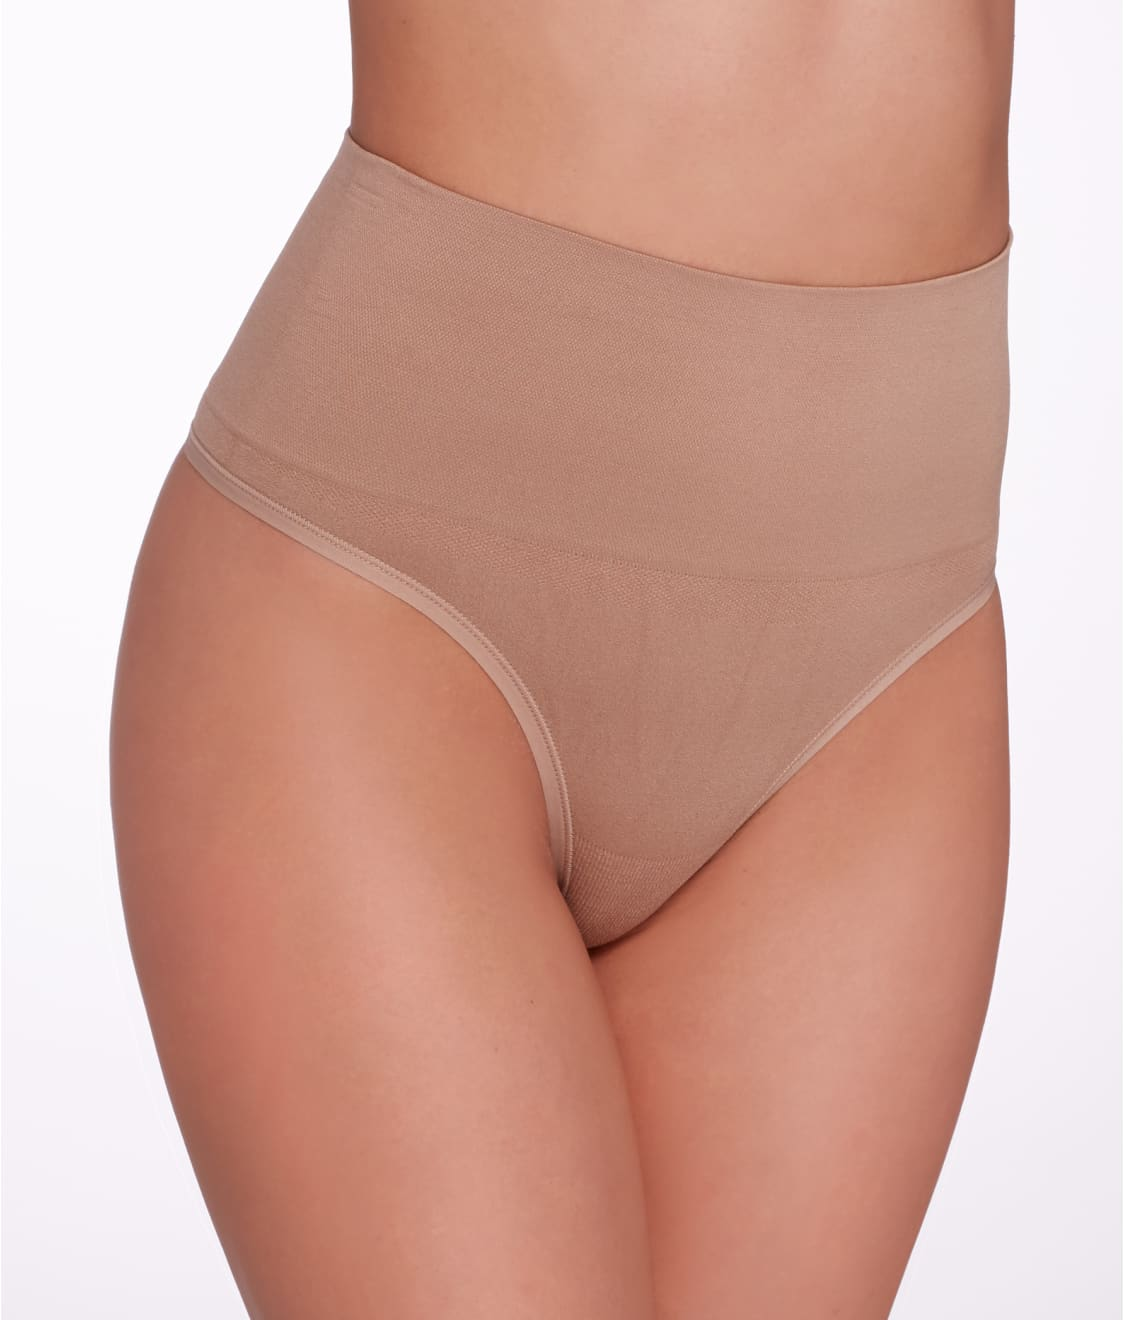 Women's Seamless Panties and Underwear | Bare Necessities